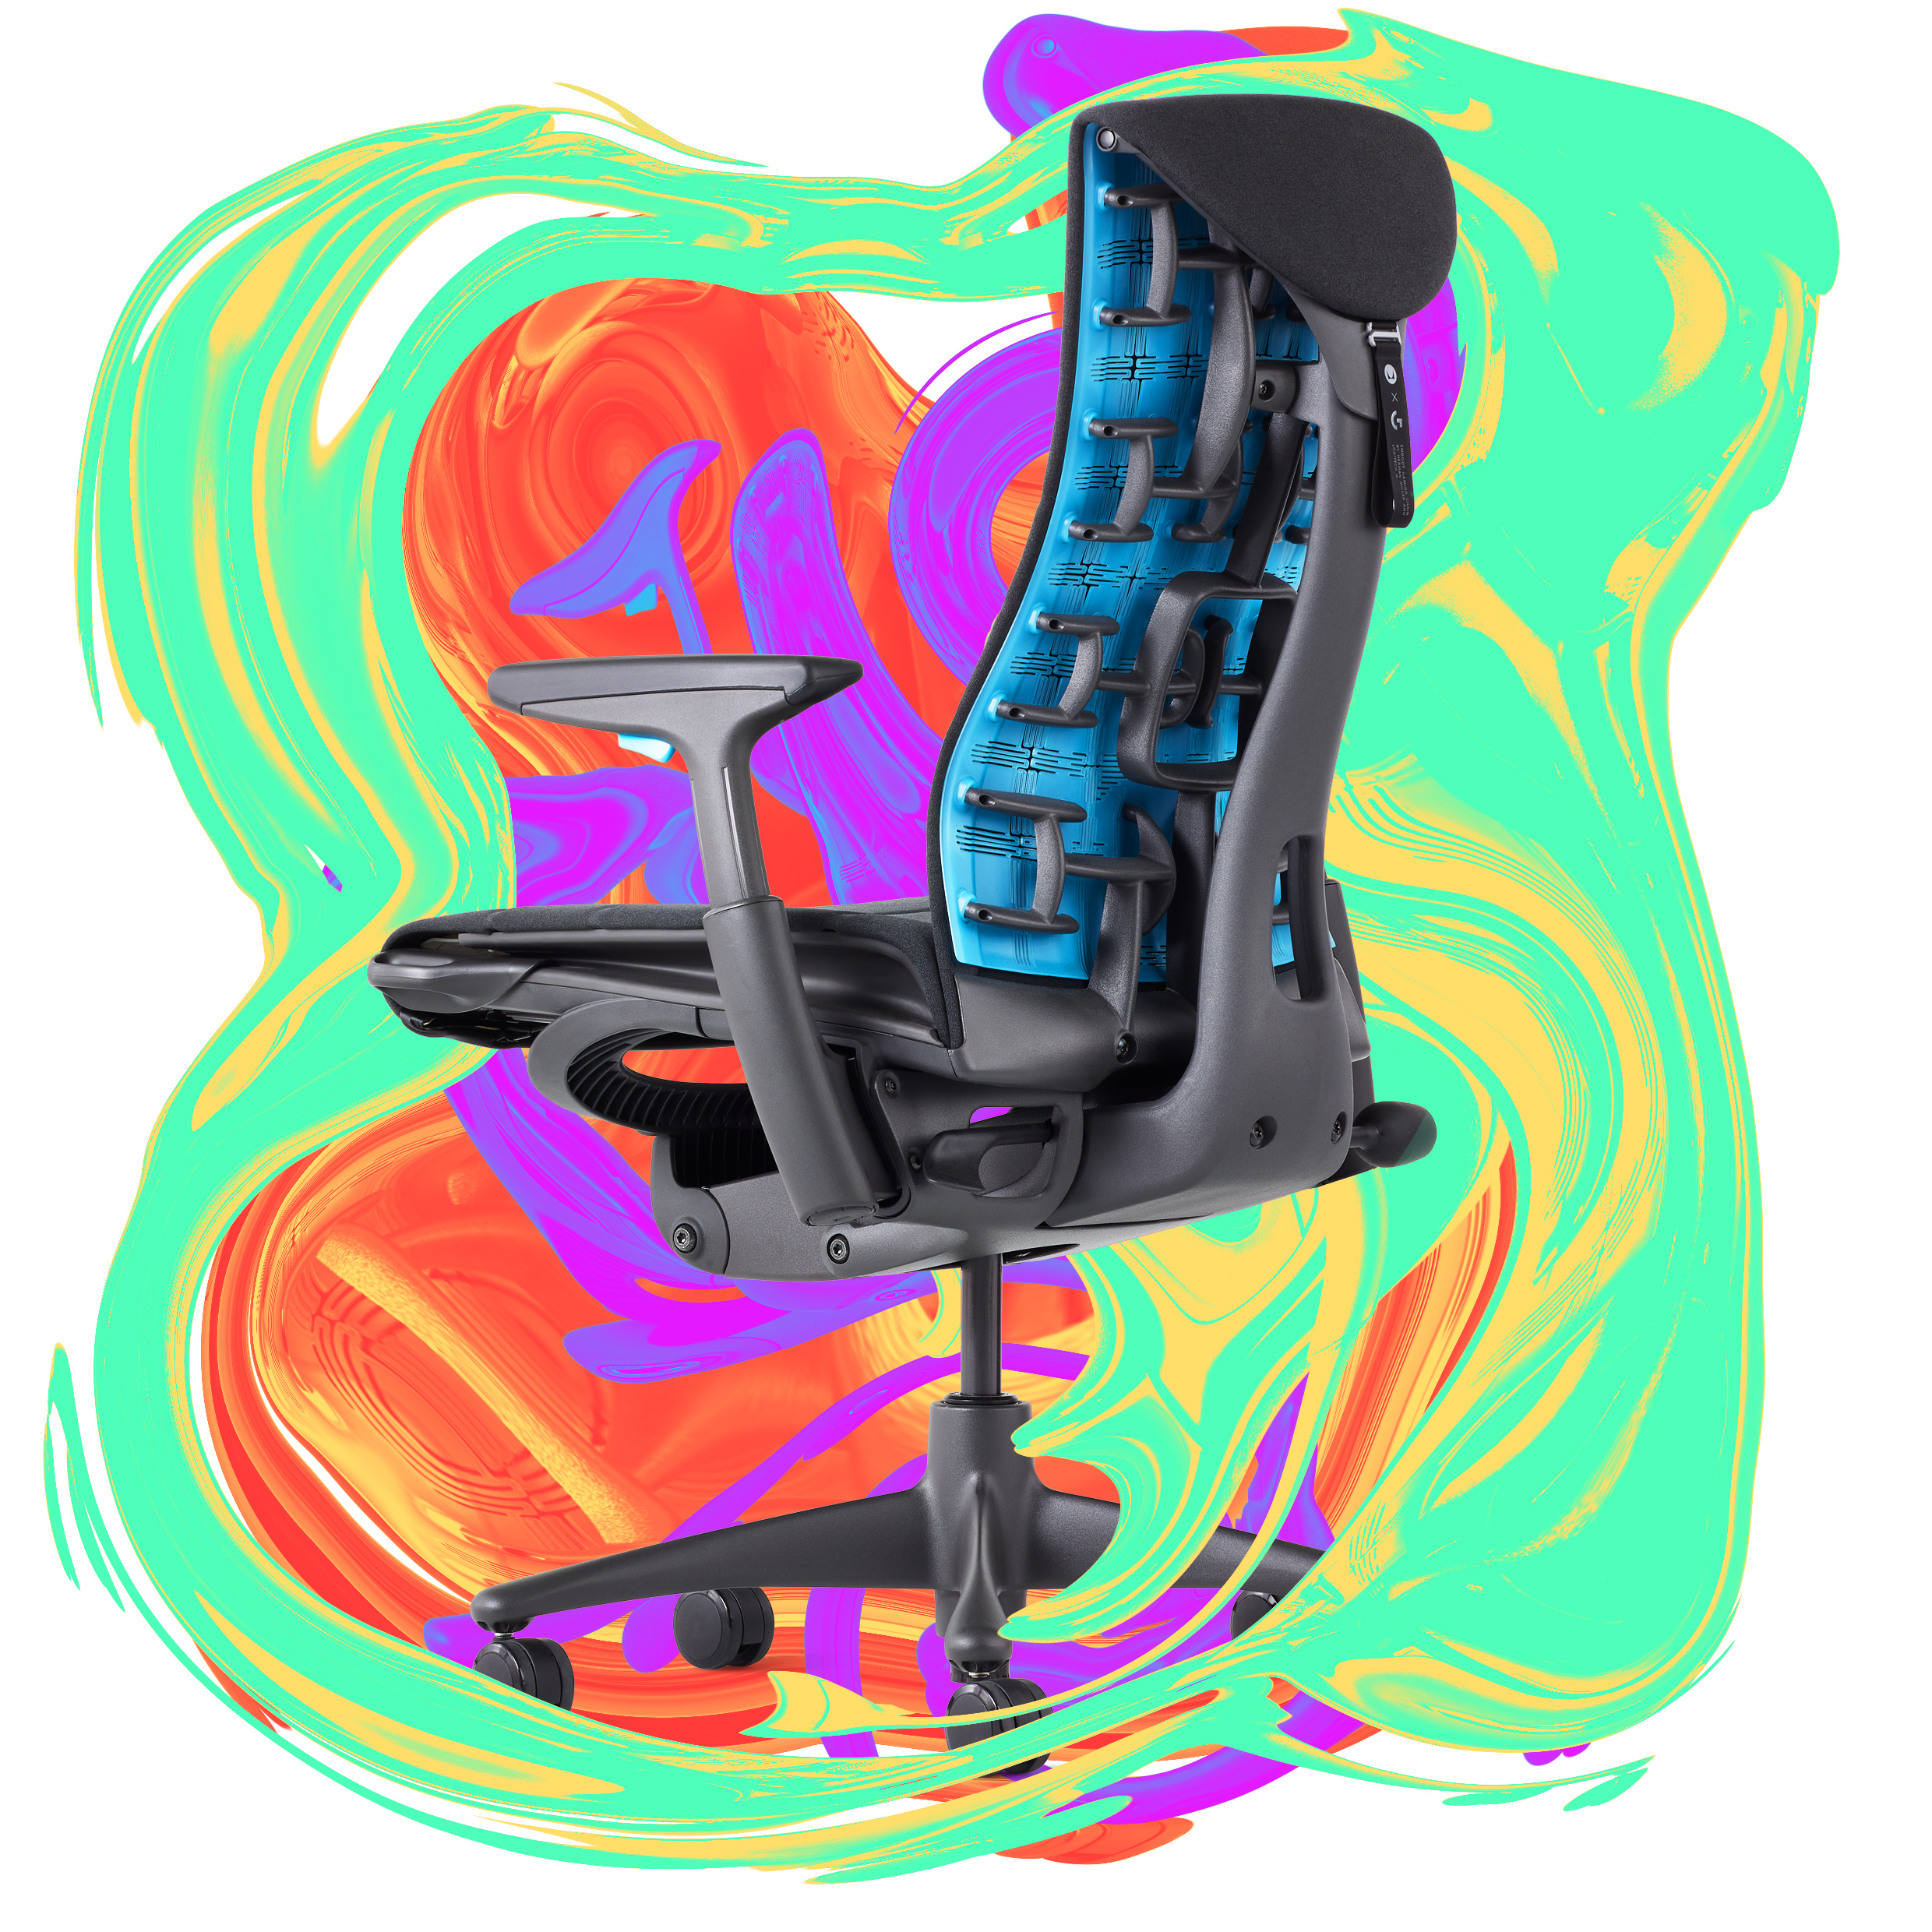 An ergonomic chair for gamers